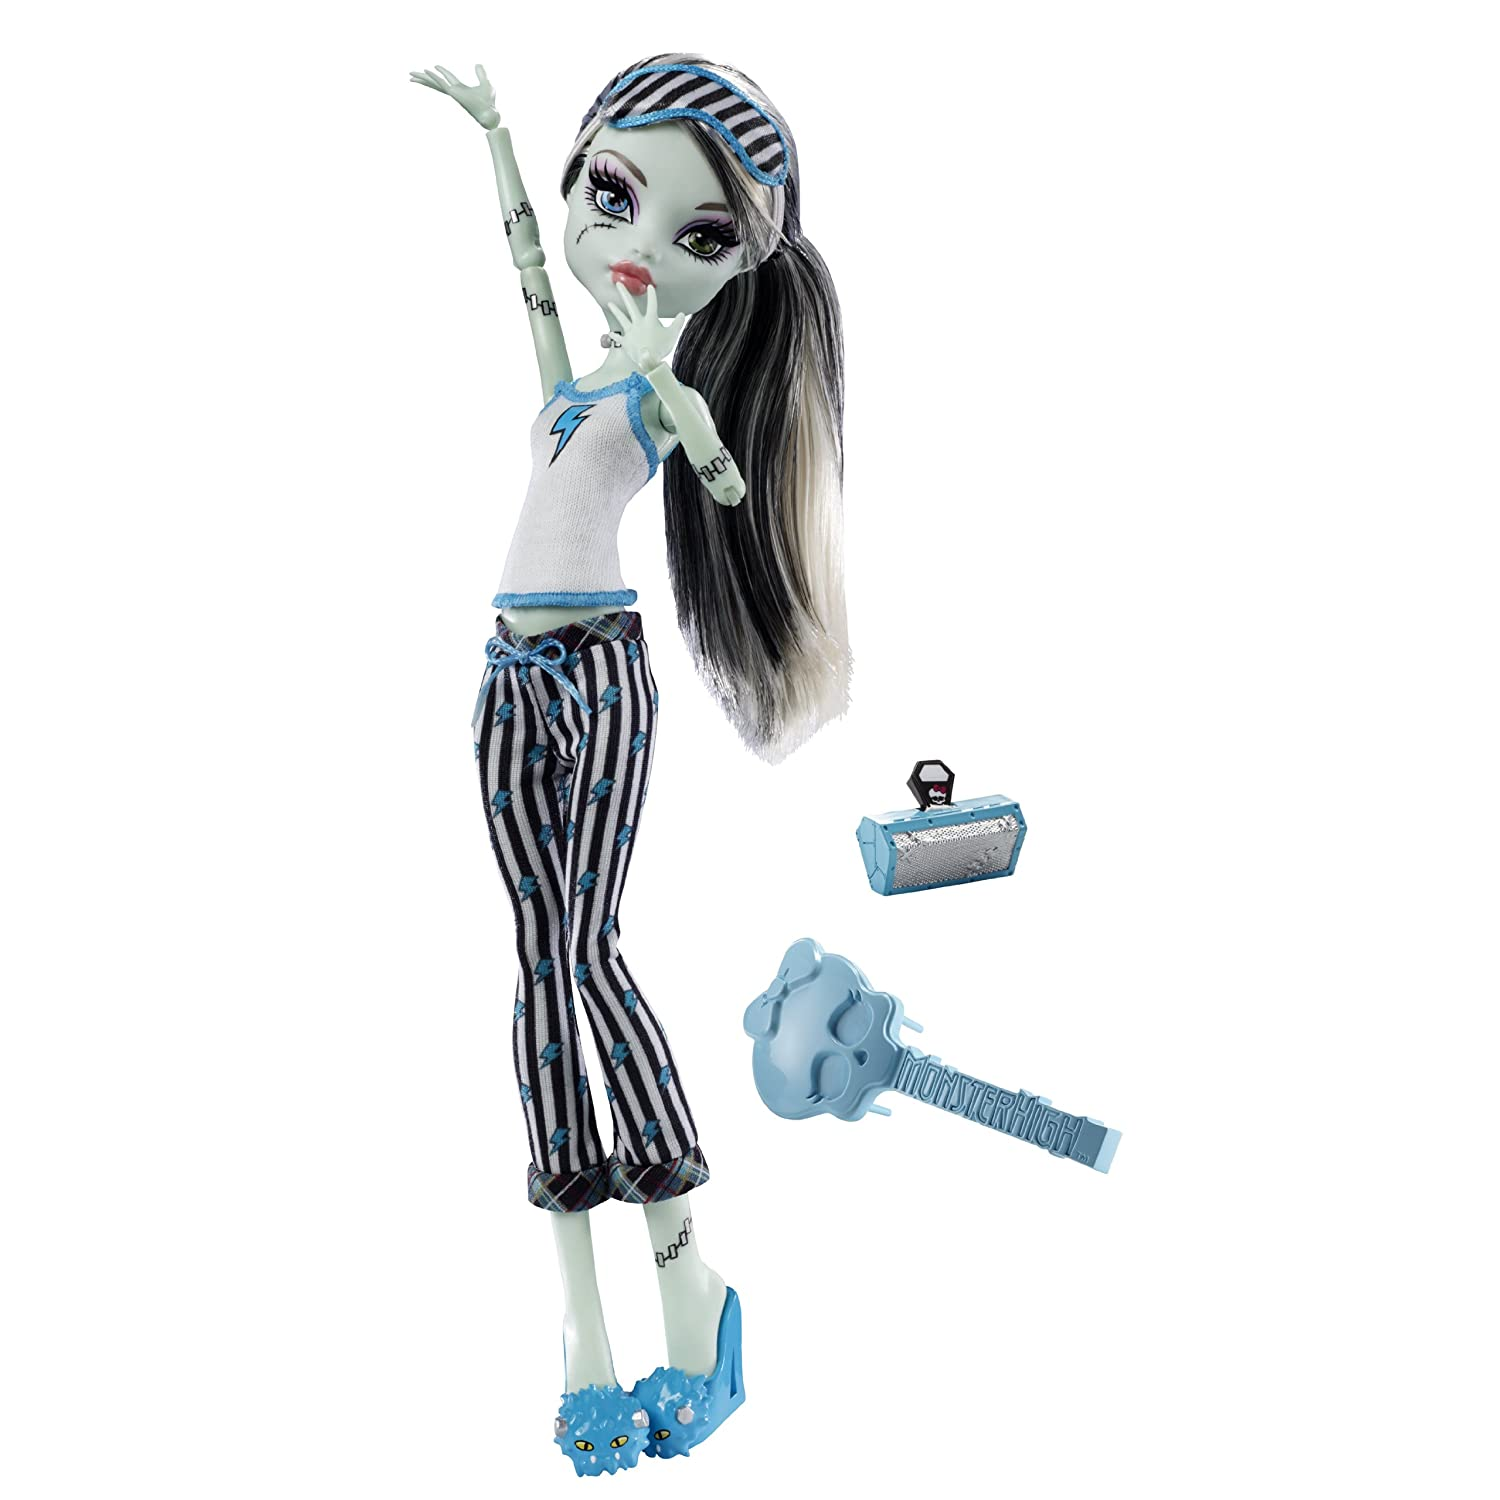 Monster High Dead Tired Lagoona Blue Doll And Hydration Station Playset Monster High Lagoona Blue Dead